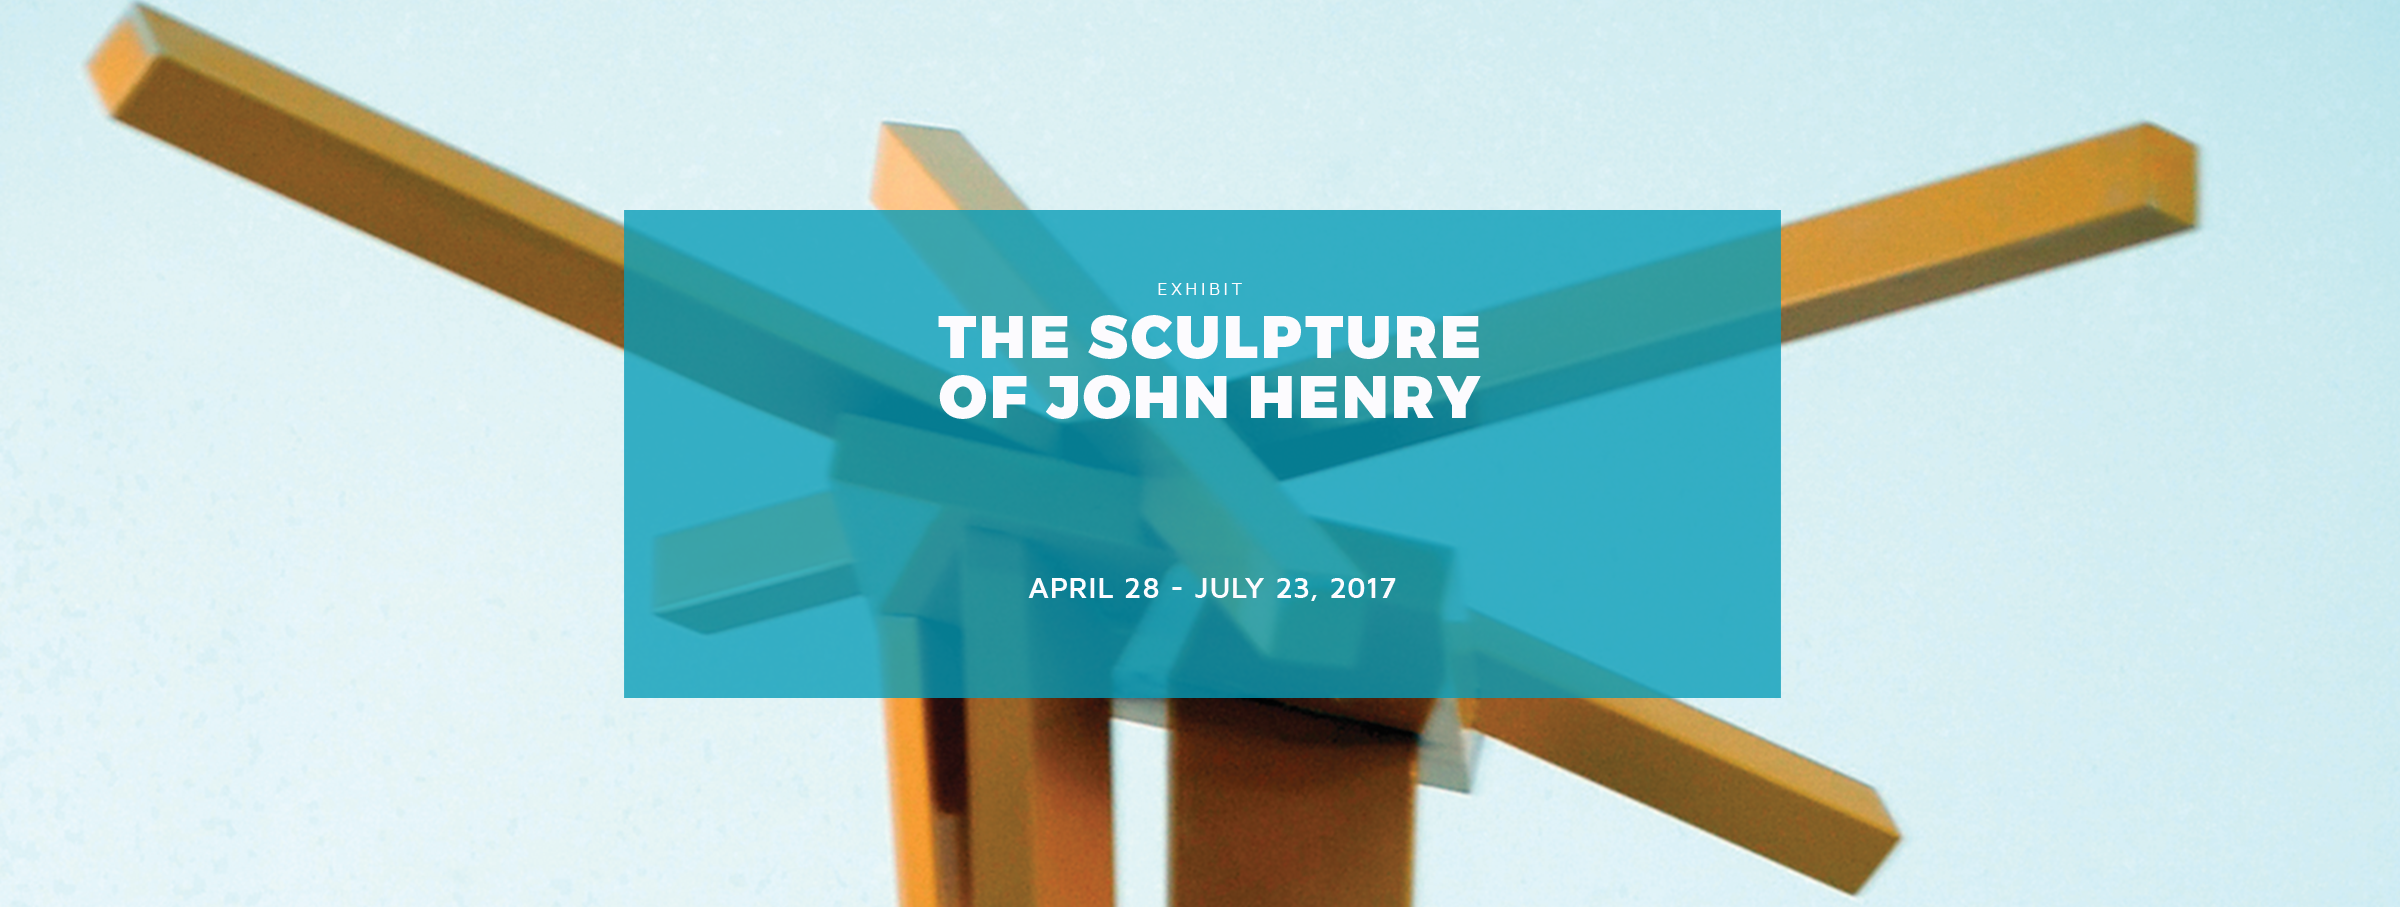 Free Things to do in Dallas: John Henry Exhibit at the Museum of Geometric and MADI Art